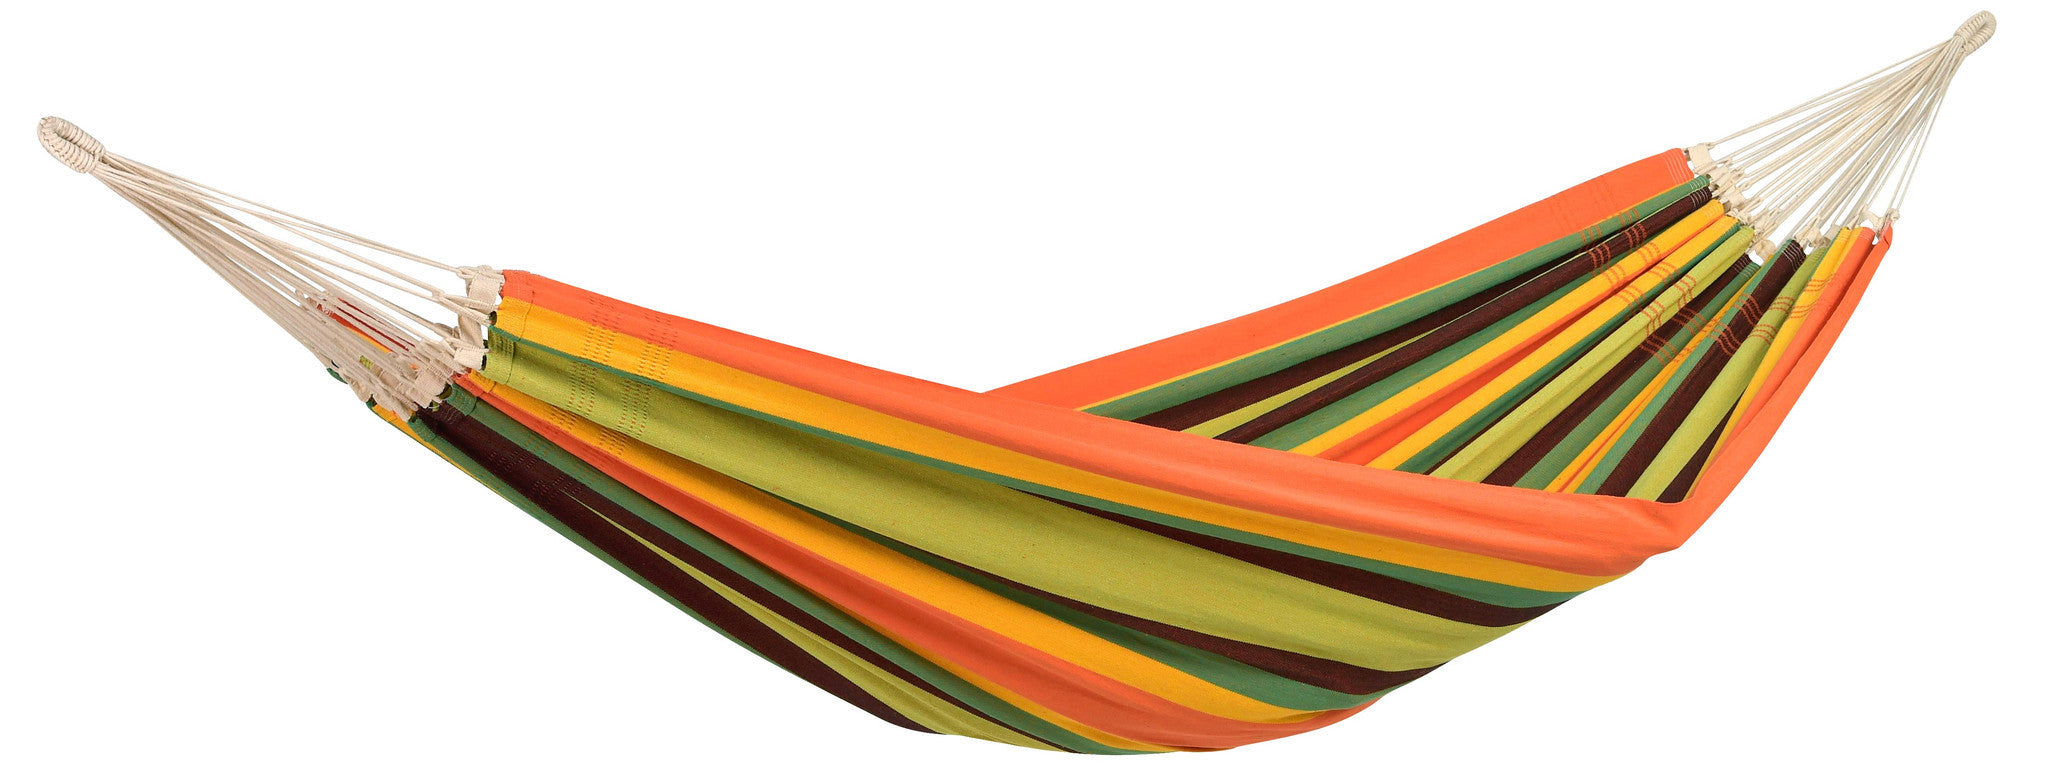 paradiso hammock by byer of maine esmeralda paradiso double hammock  u2013 sundown canoe outfitters  rh   sundowncanoes